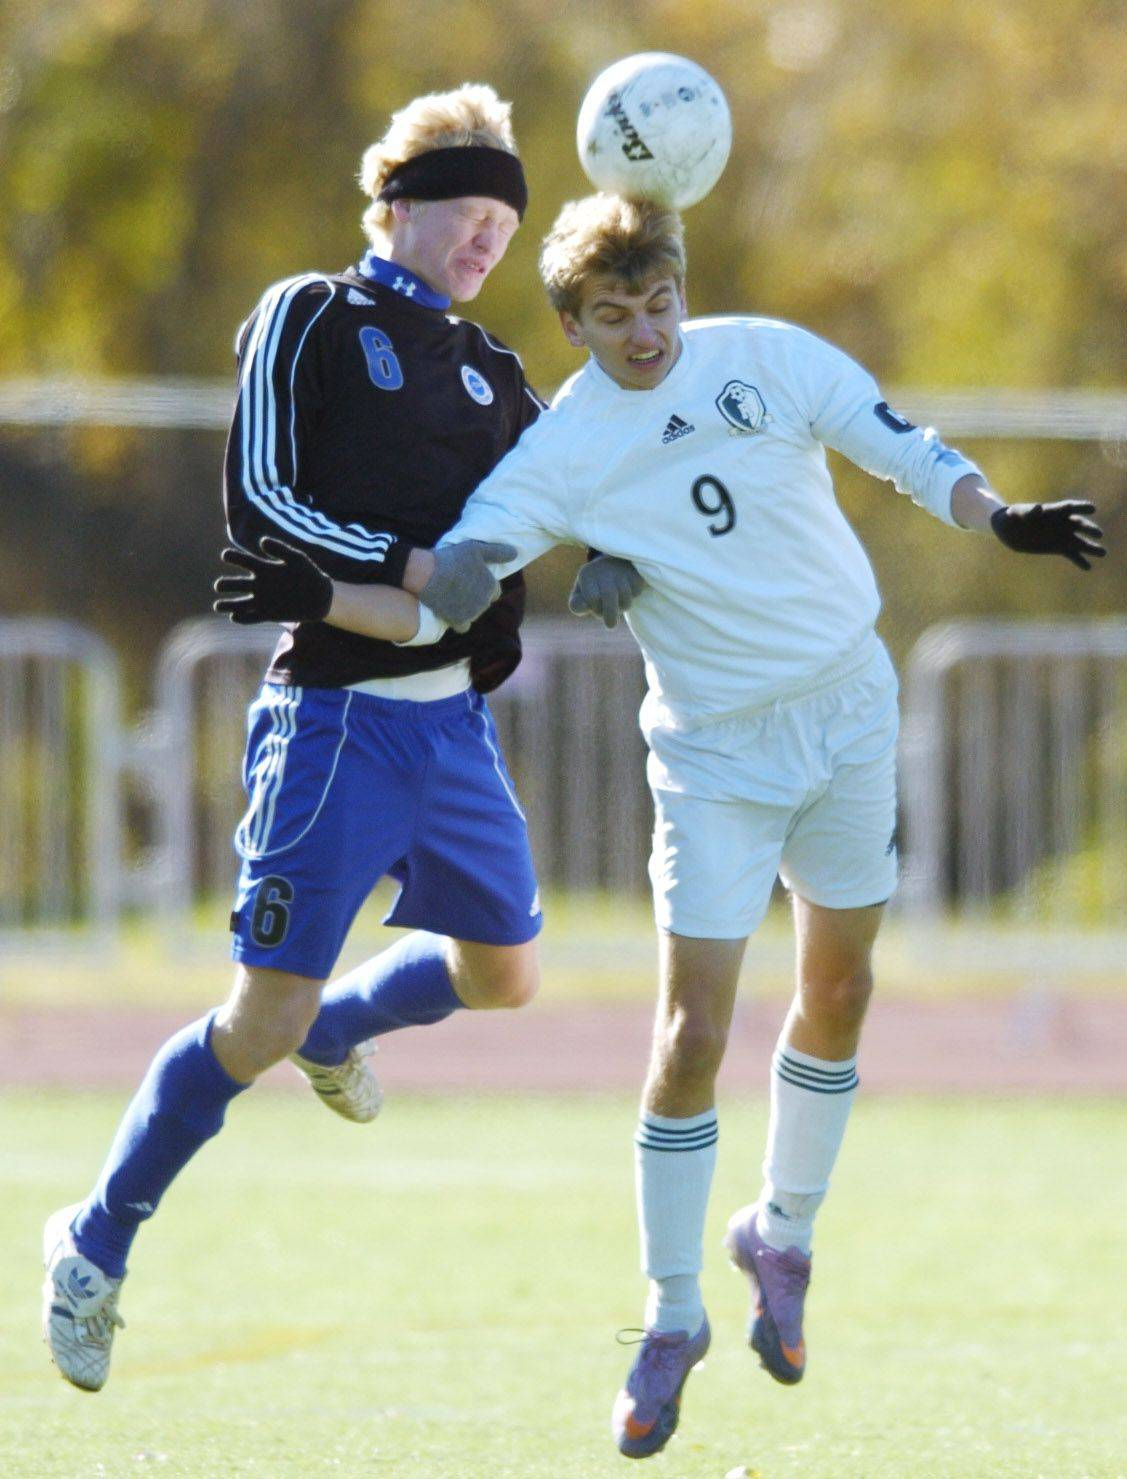 Burlington Central's Zachary Jochum, left, and Ridgewood's Peter Soja leap for a header.